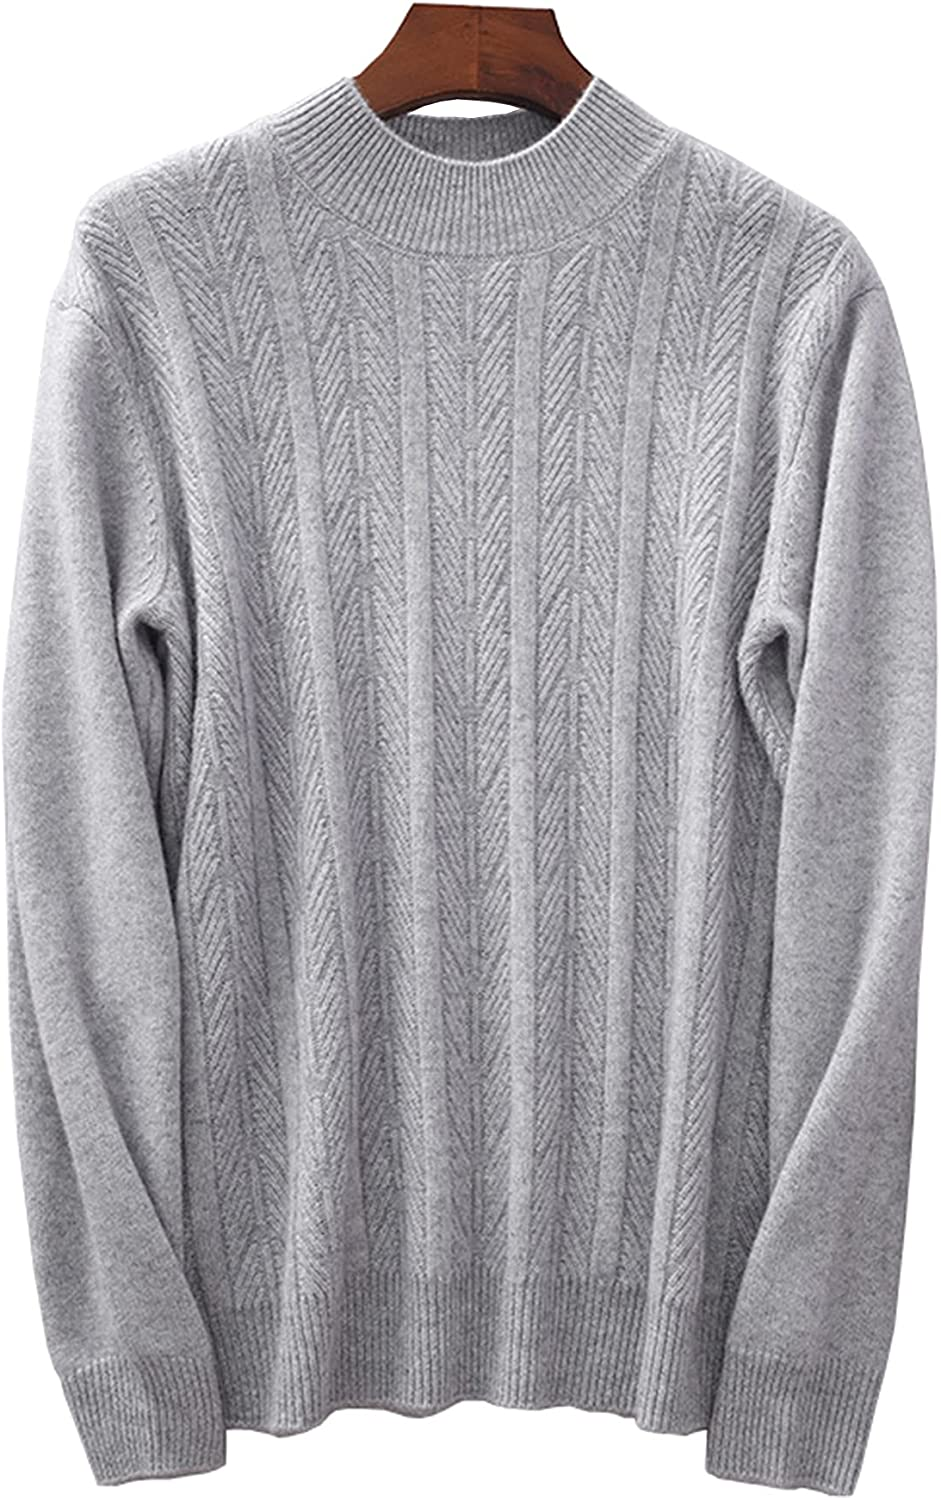 Men's Crewneck Cashmere Sweater Solid Color Twist Thicken Casual Large Size Pullover Daily